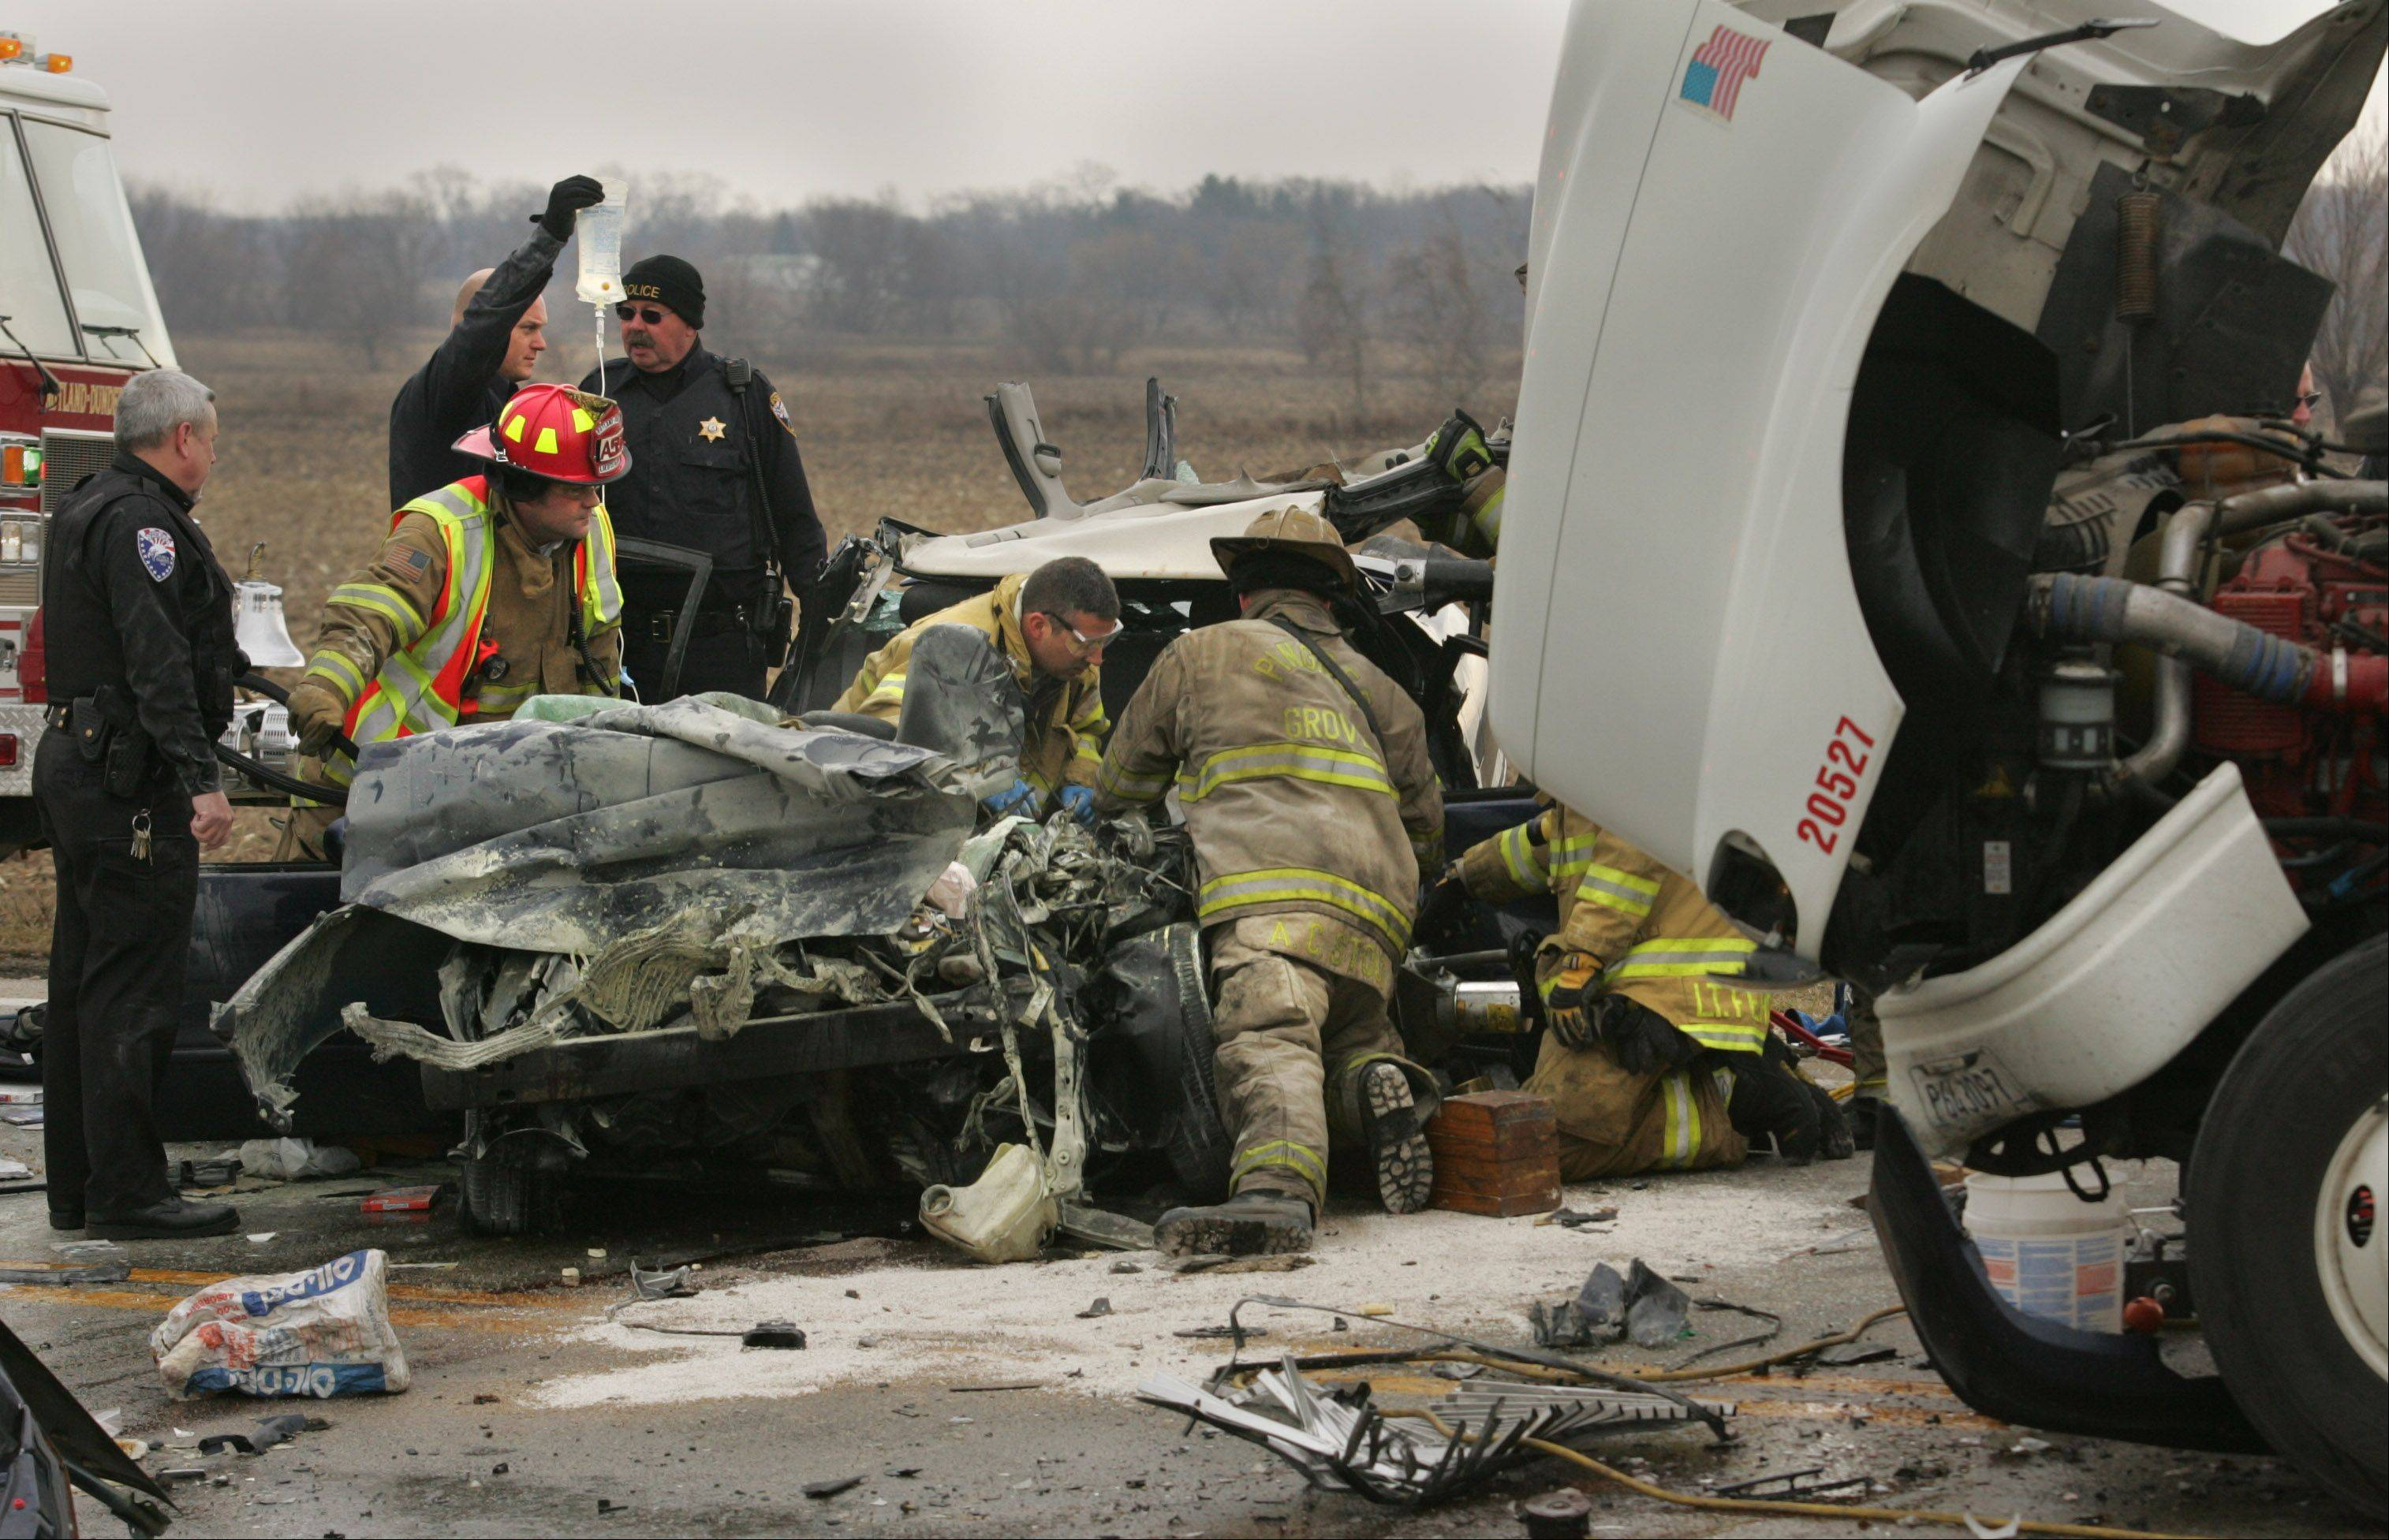 First responders from several area departments work to extricate Martin Baureis, 26, of Johnsburg, from his car Thursday in unincorporated Rutland Township. Sheriff's police said the car Baureis was driving veered into the path of an oncoming semitrailer and was hit head-on just east of Route 72 and Big Timber Road.